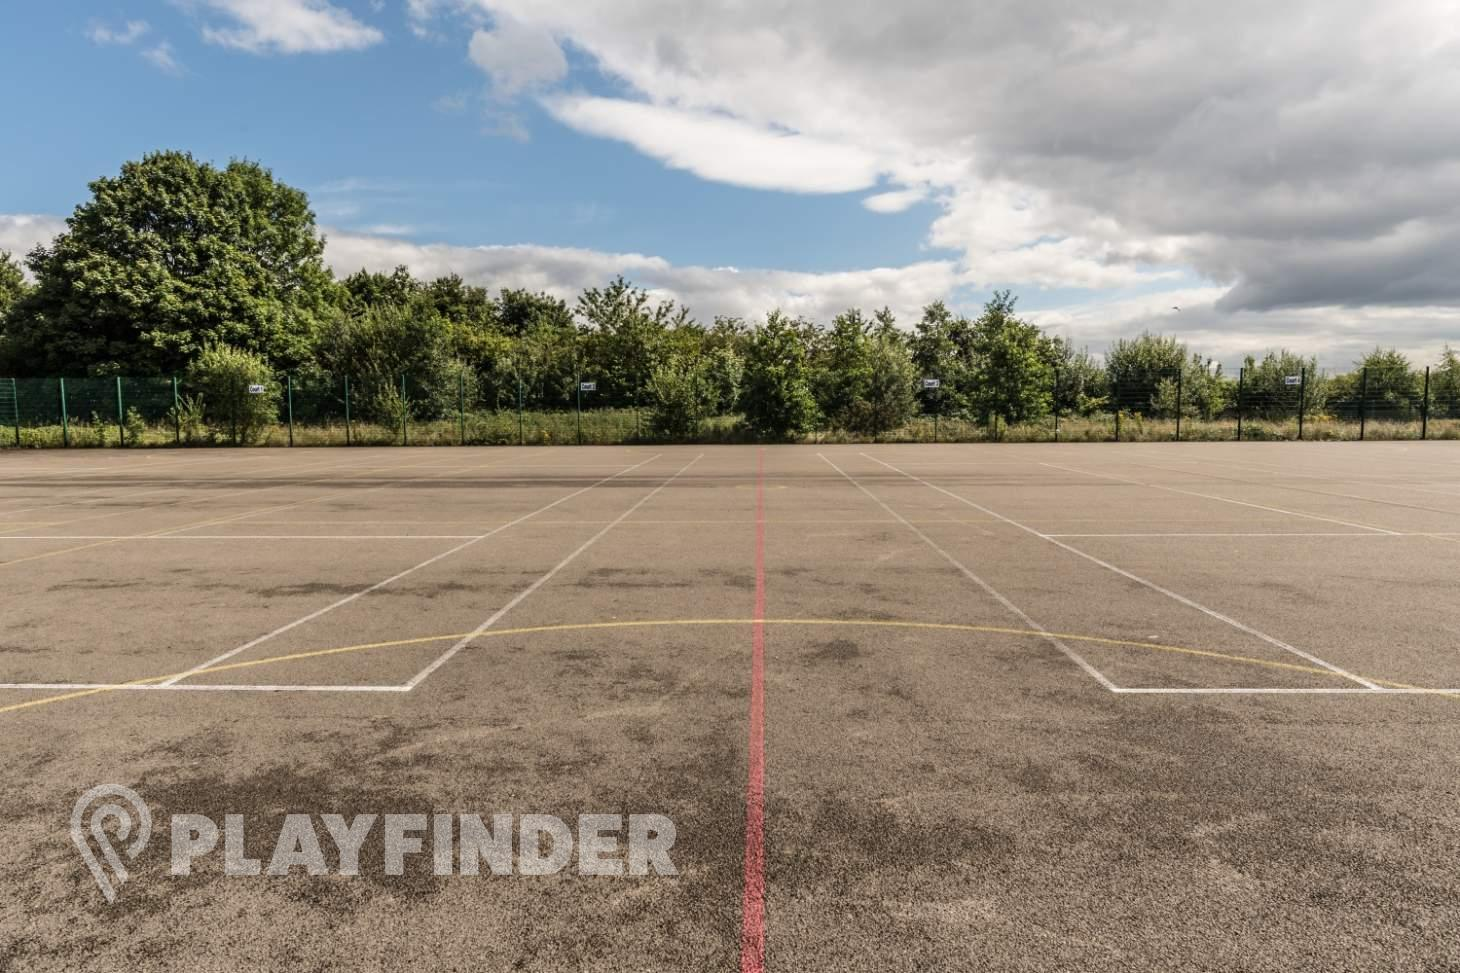 Harrop Fold School Outdoor | Concrete netball court